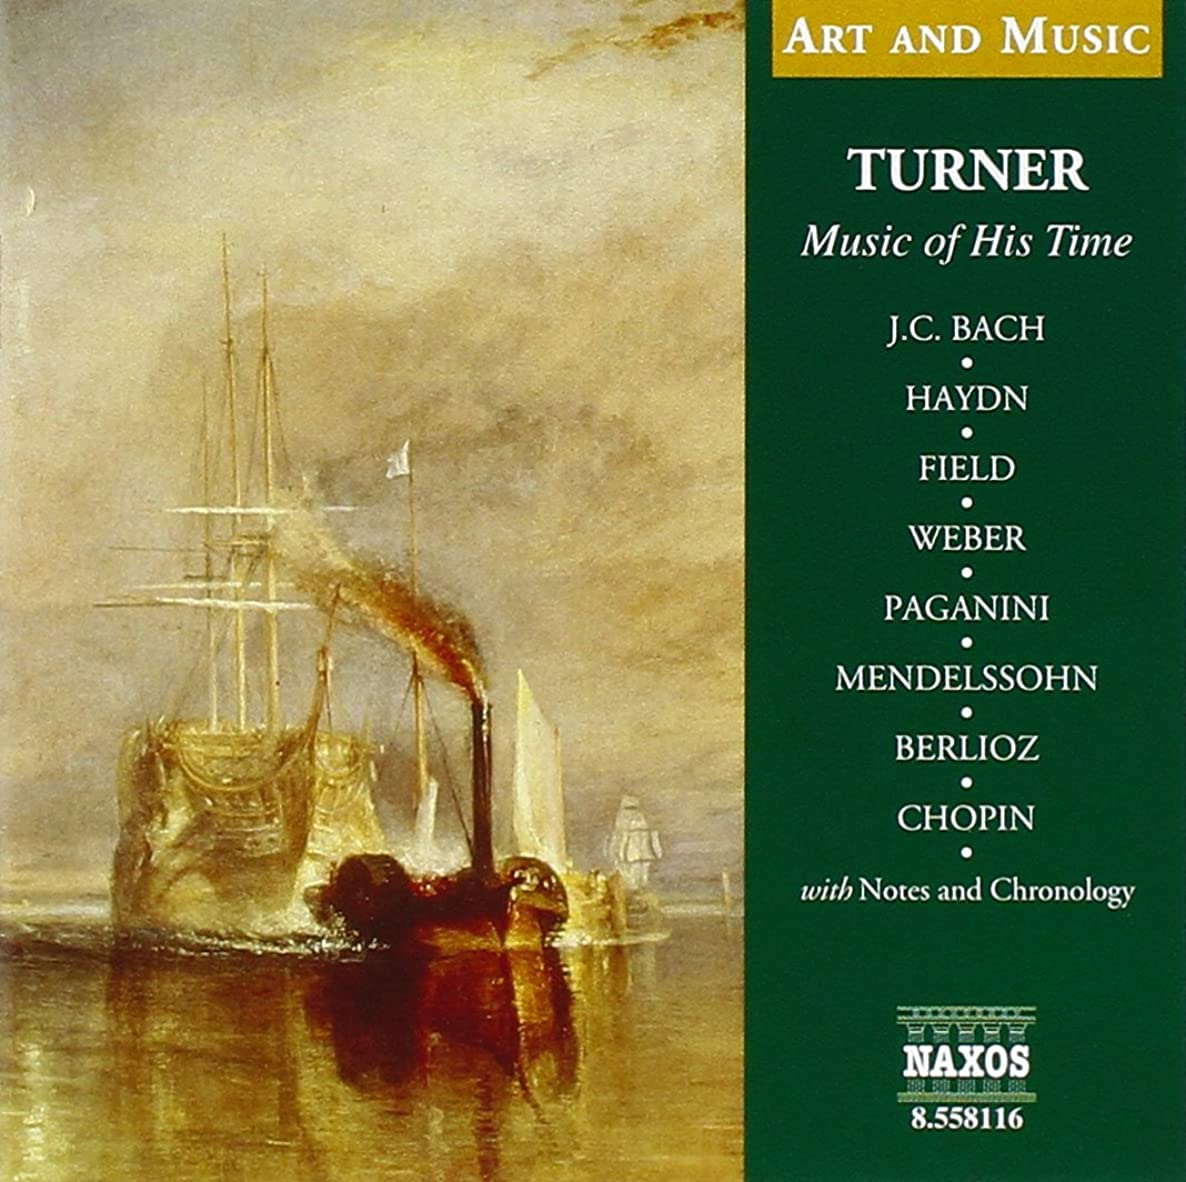 Turner: Music of His Time